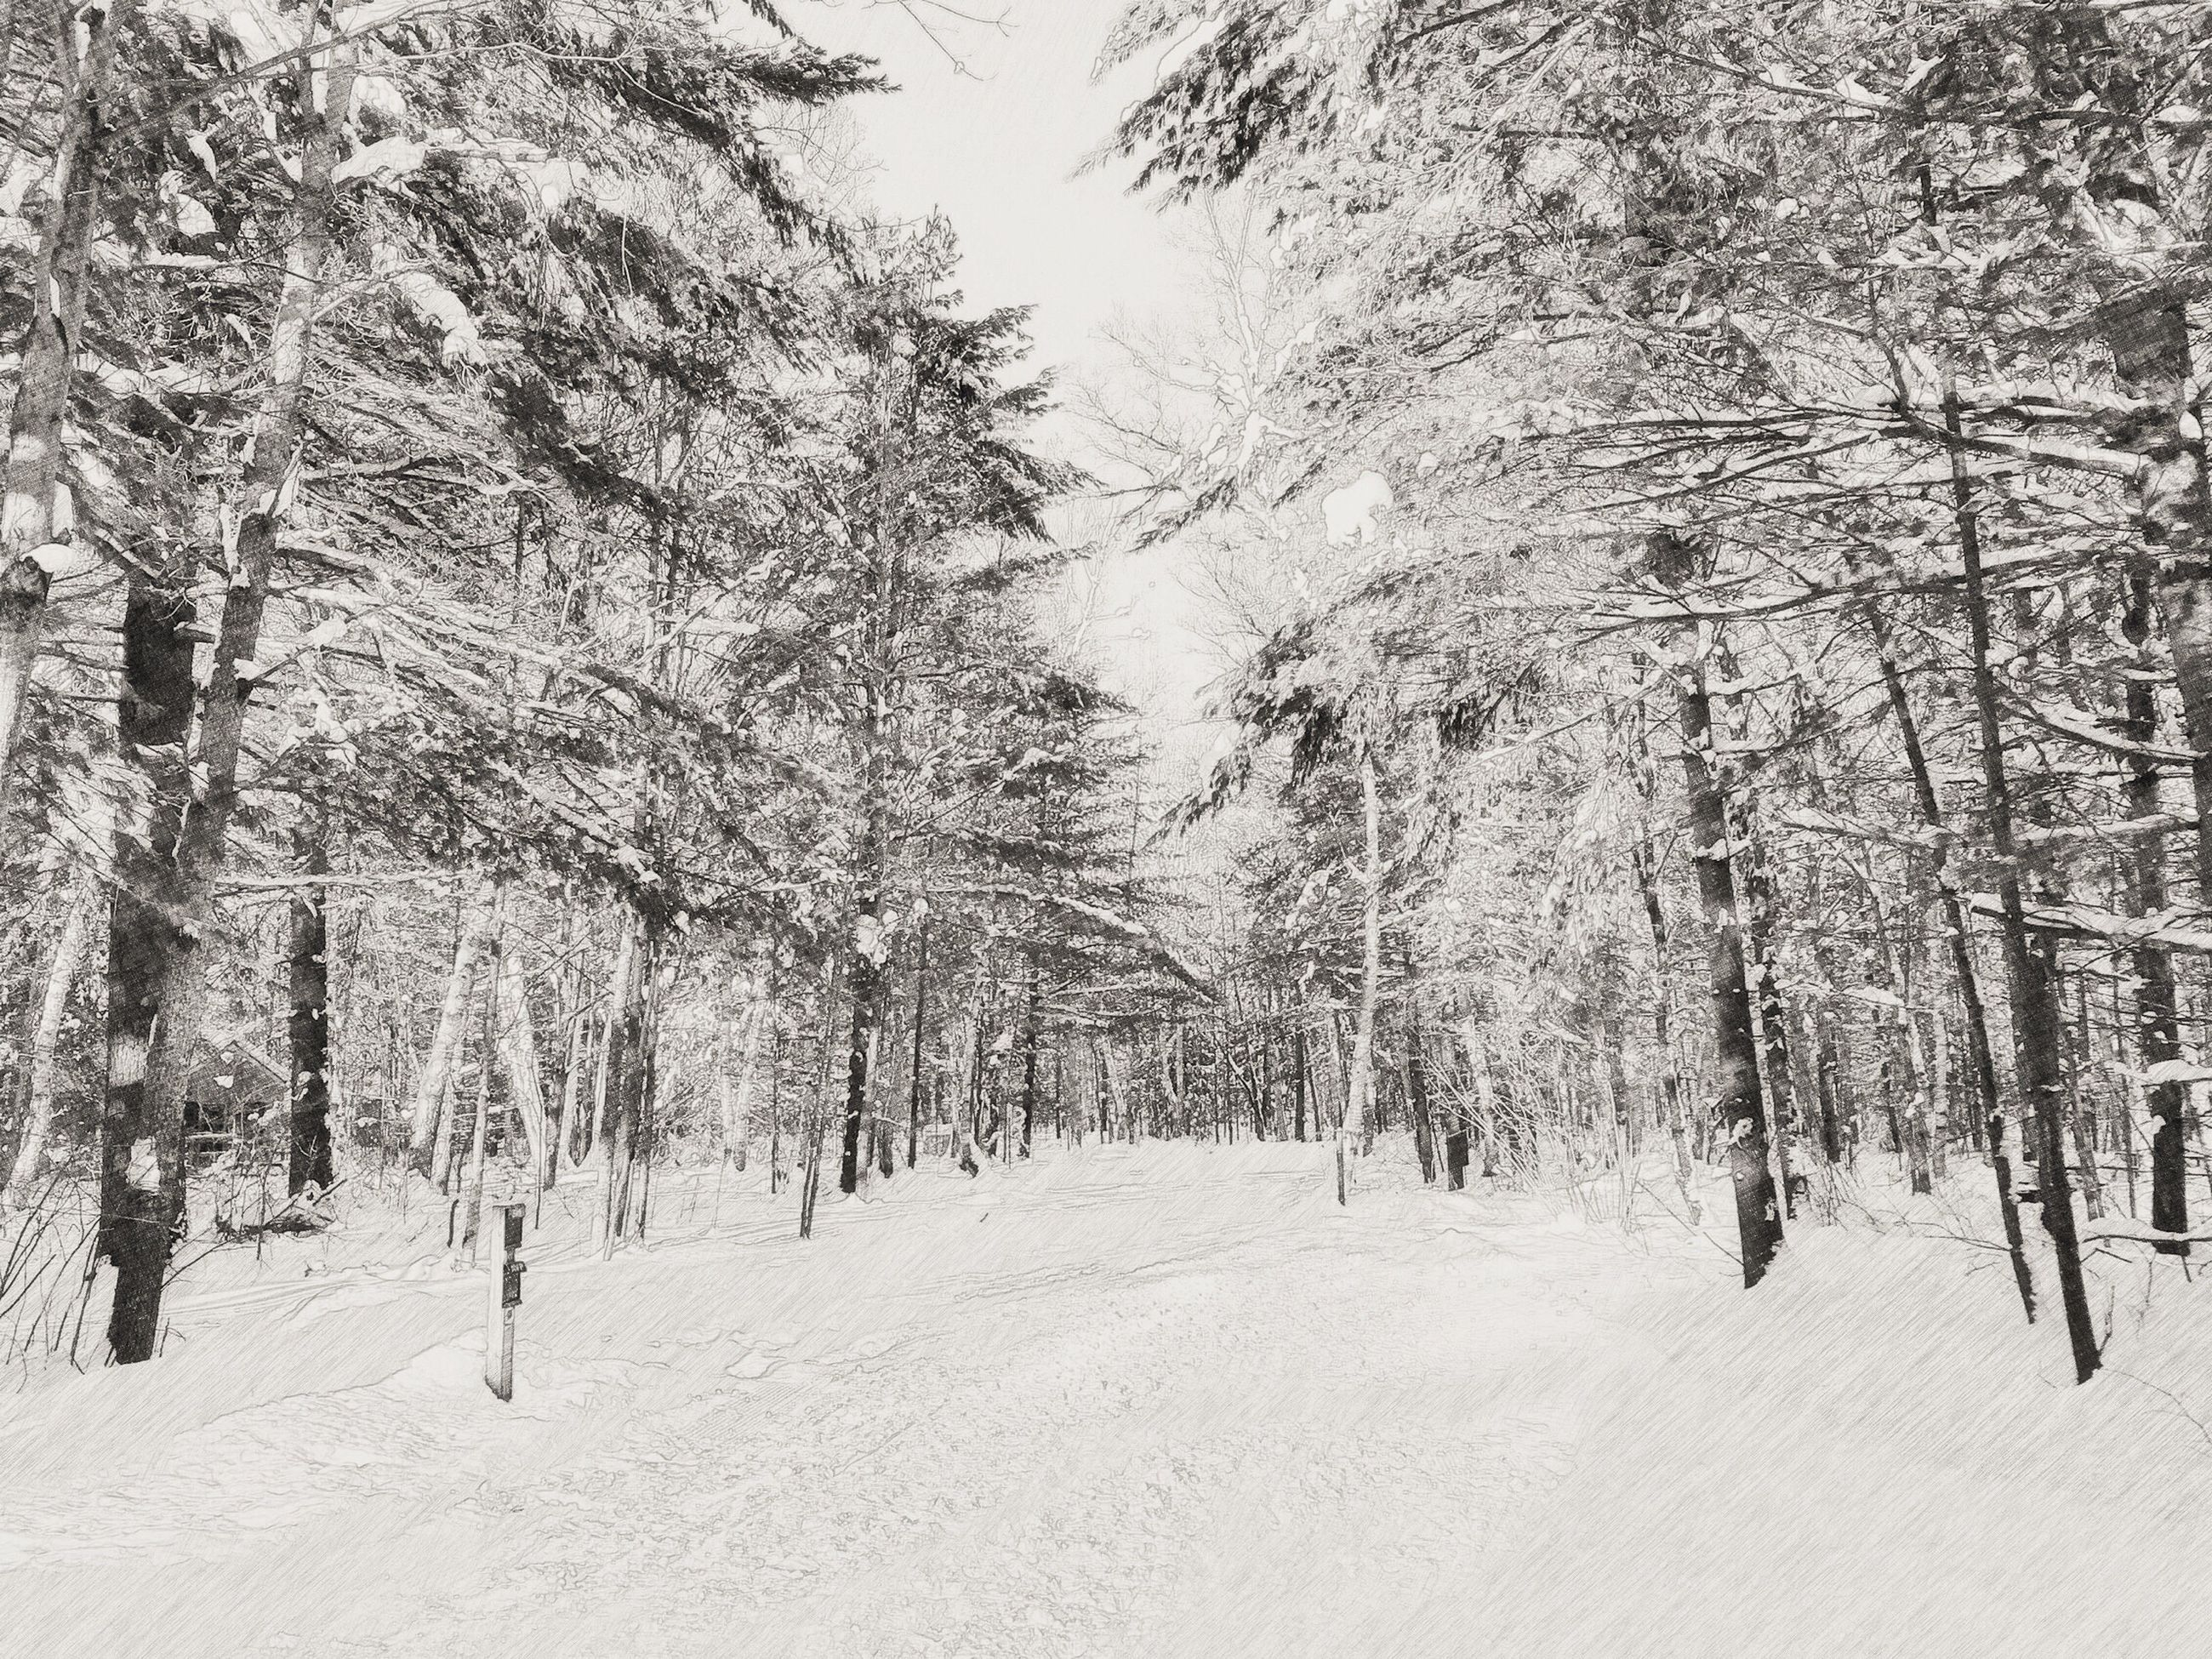 tree, snow, winter, cold temperature, tranquility, tranquil scene, nature, growth, season, beauty in nature, branch, scenics, tree trunk, landscape, covering, forest, weather, day, non-urban scene, woodland